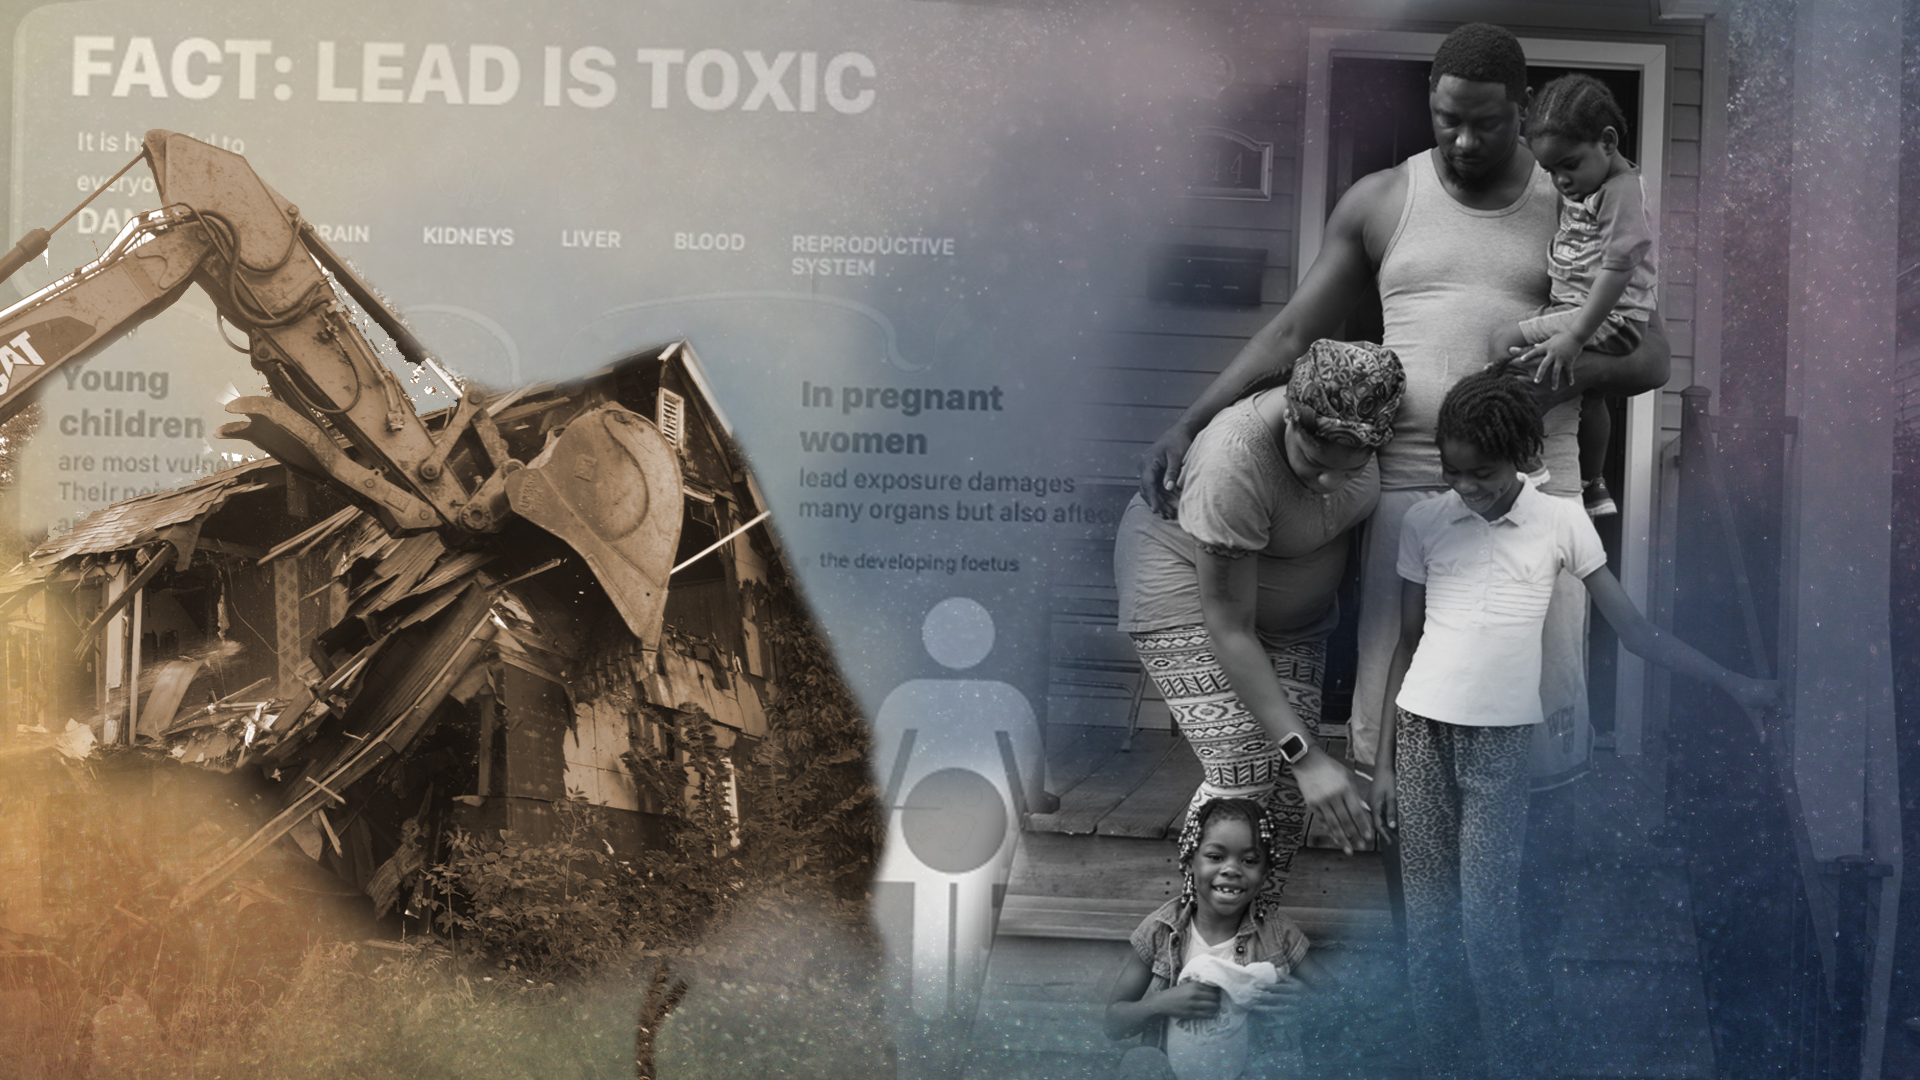 Poisoned, ignored and evicted: The perils of living with lead